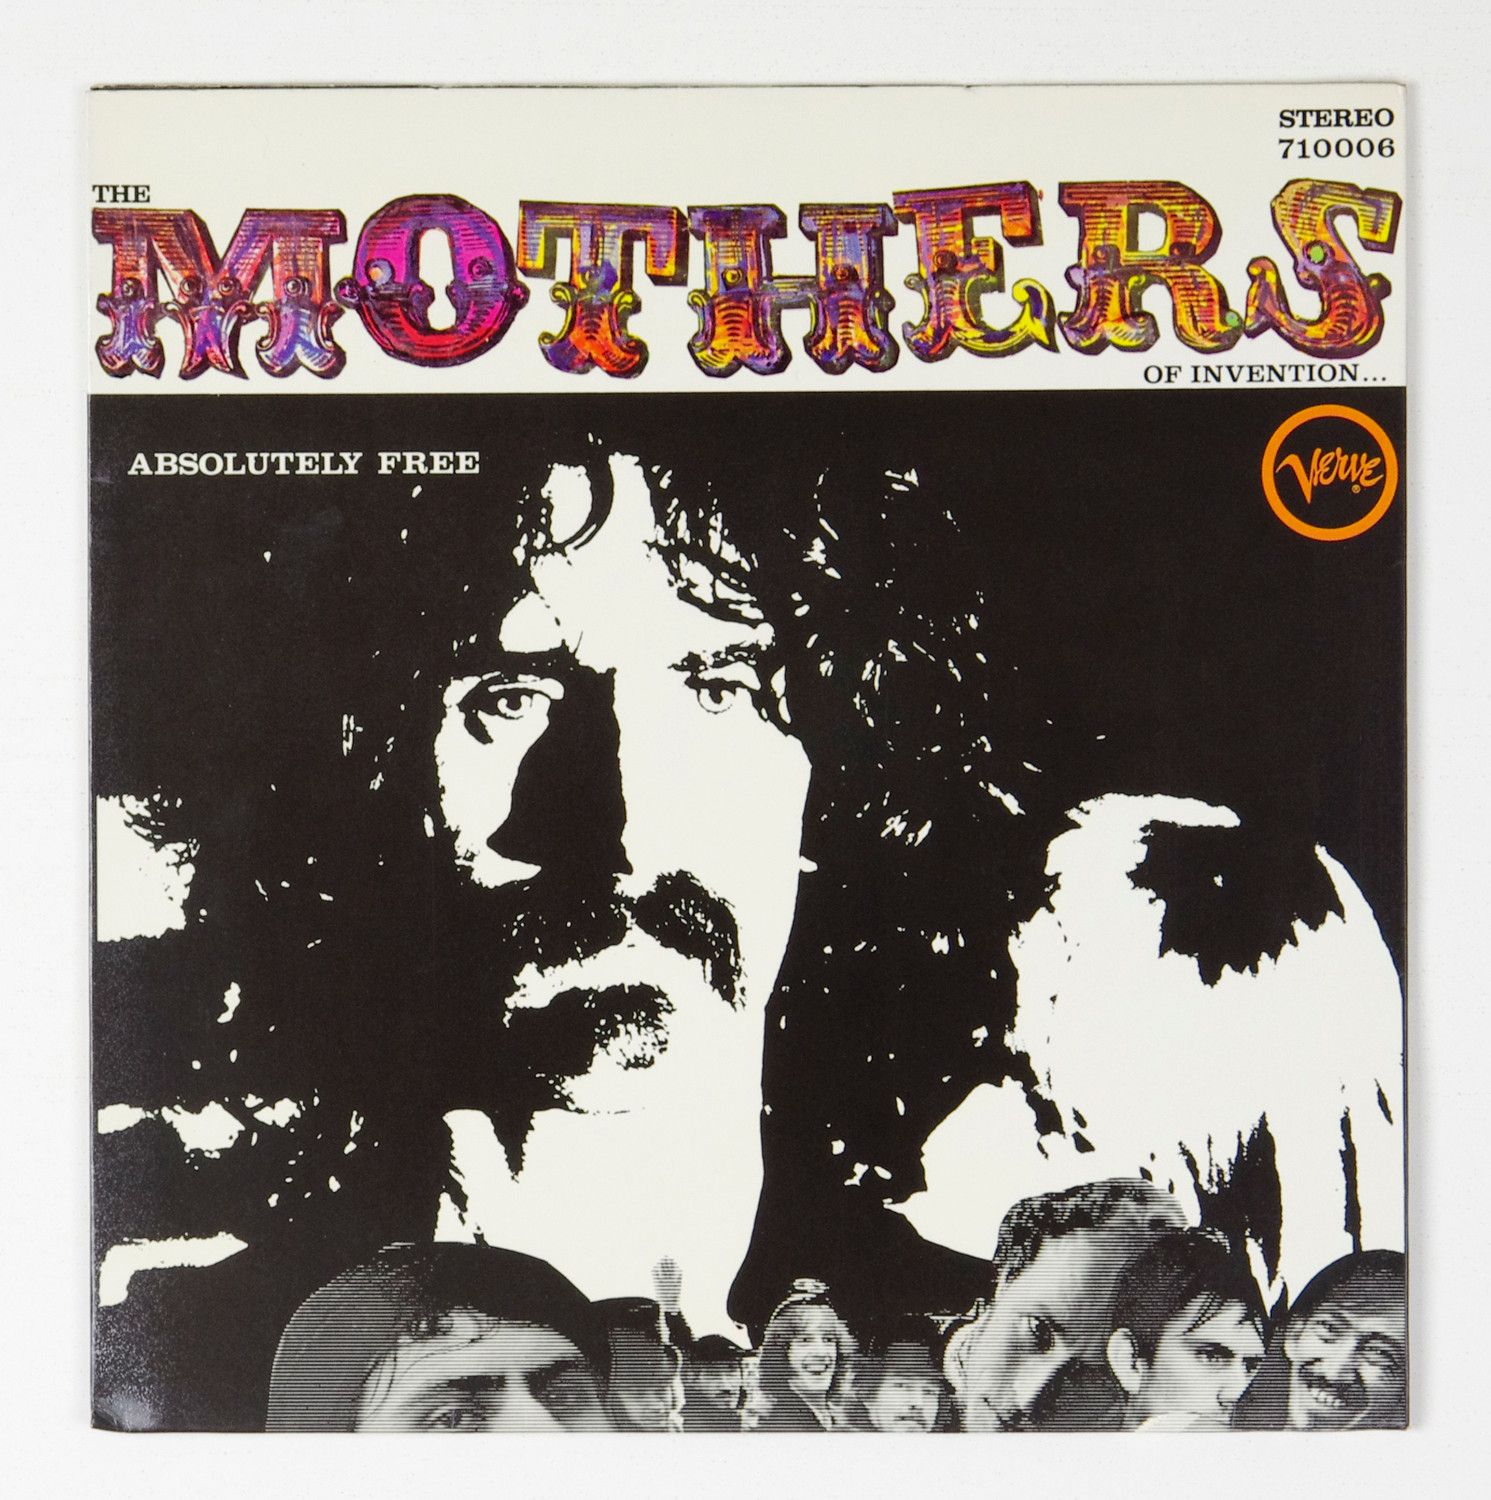 Frank Zappa The Mothers Of Invention Vinyl Absolutely Free 1967 German pressing